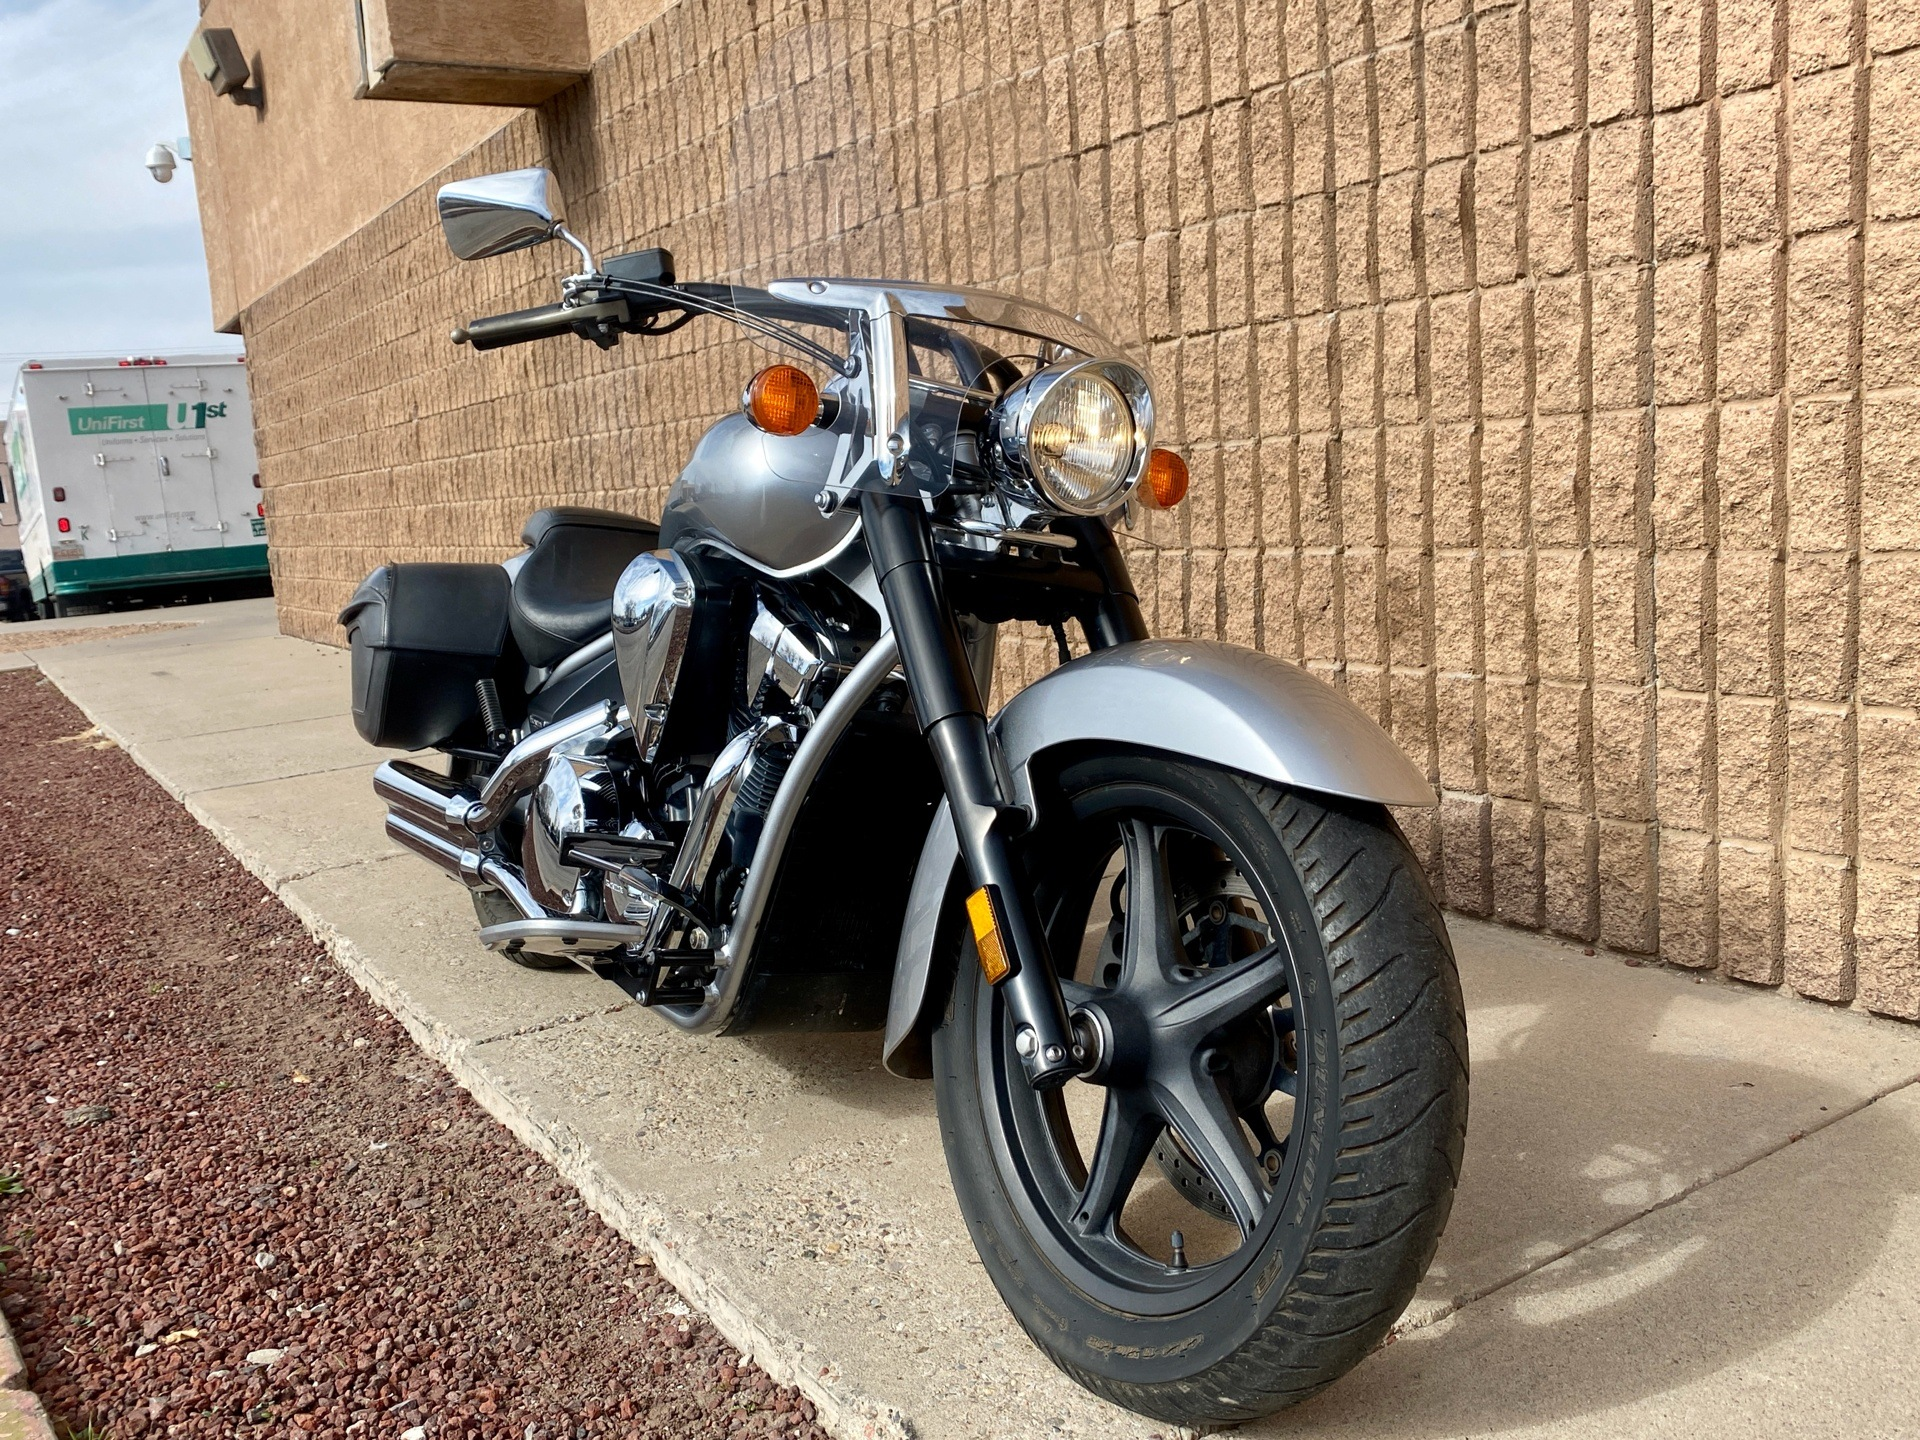 2014 Honda Interstate in Albuquerque, New Mexico - Photo 3